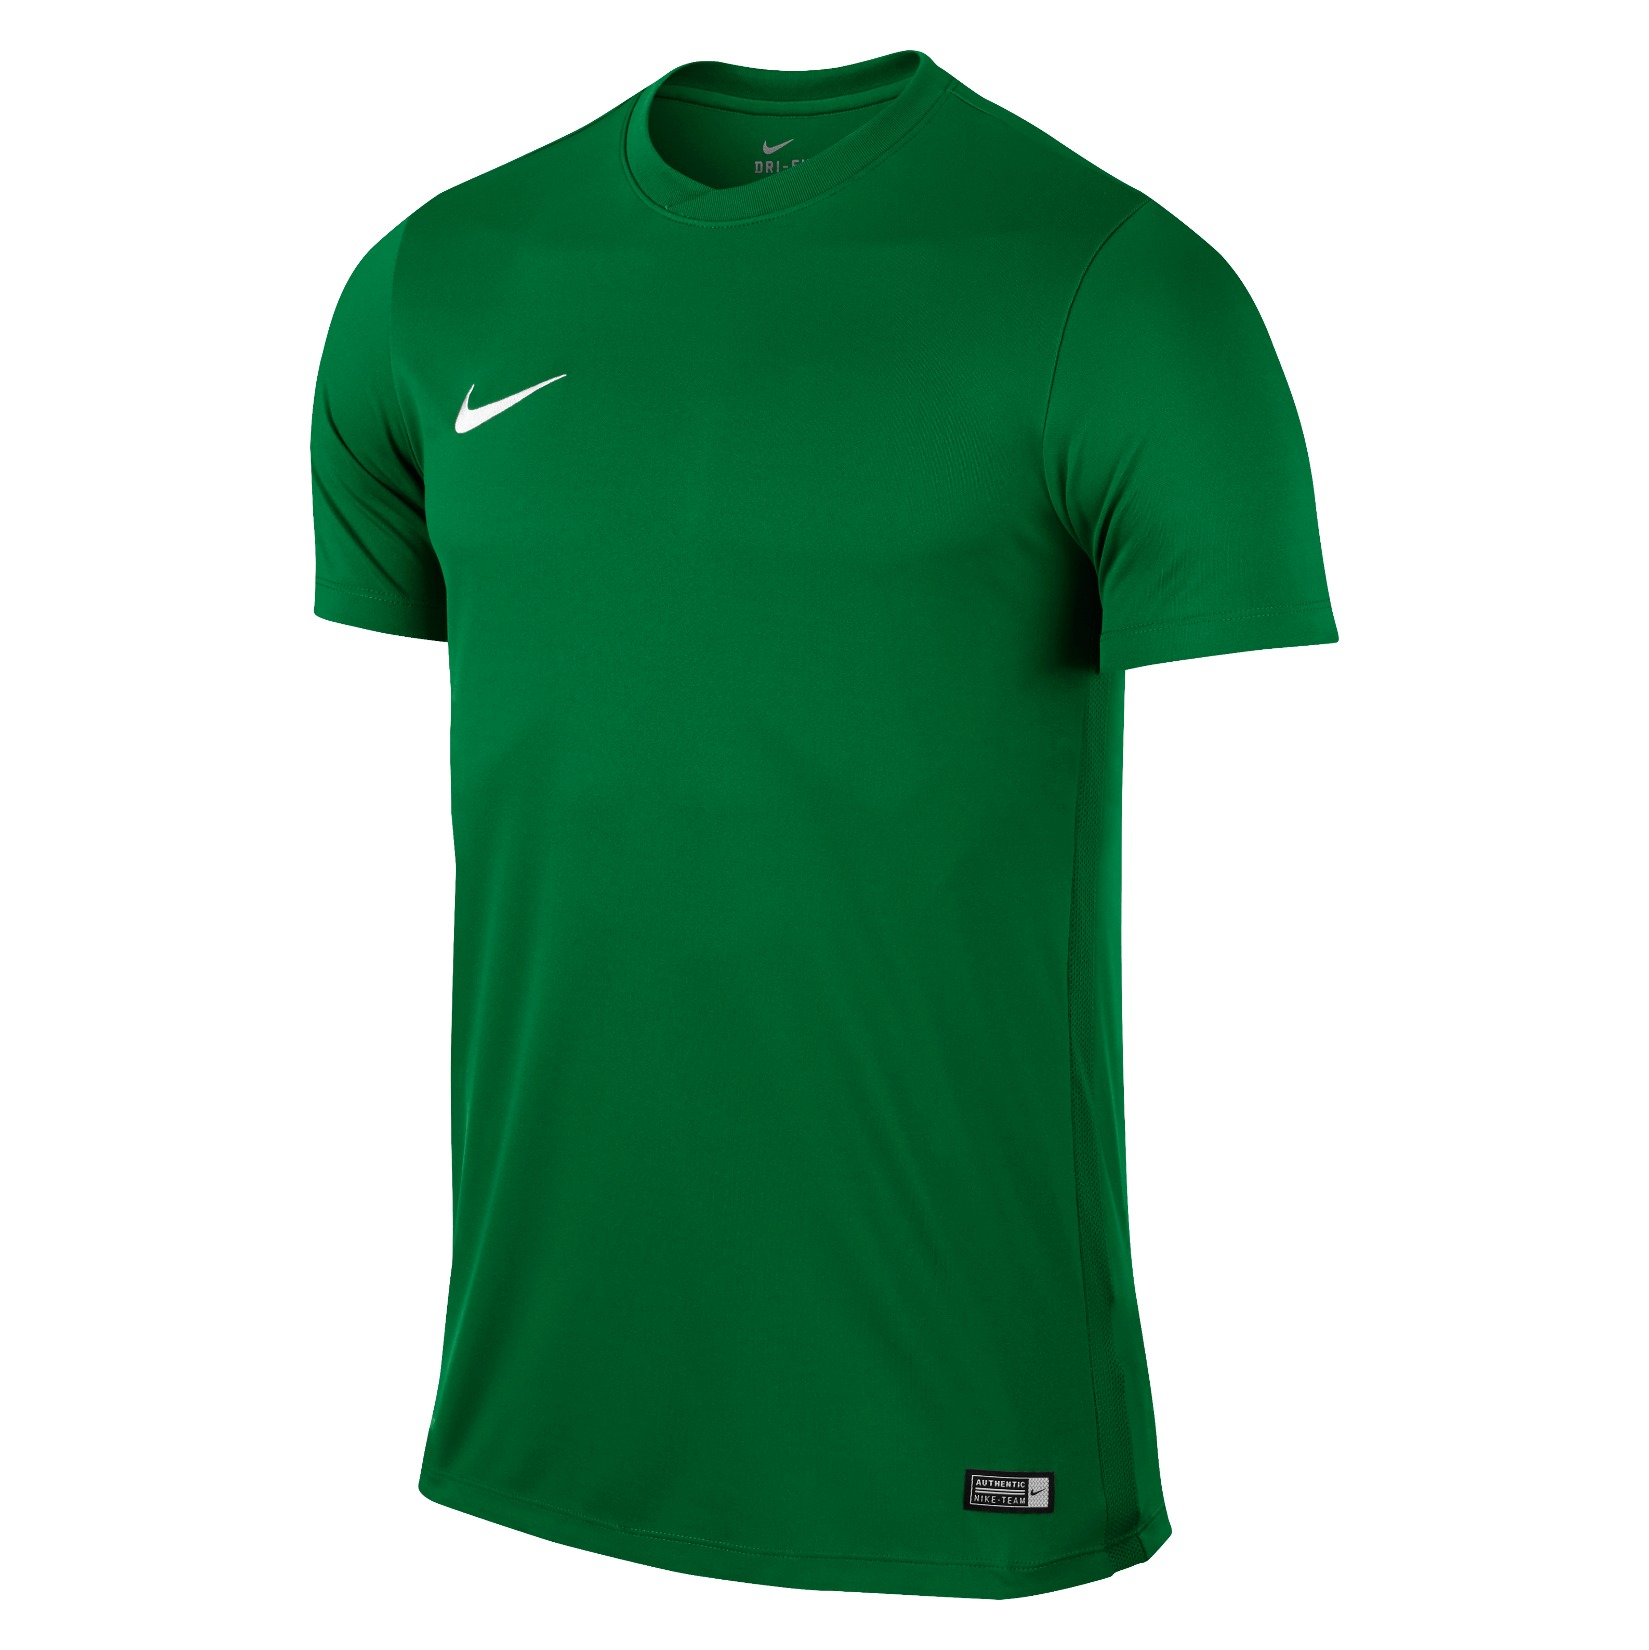 Nike Park VI Short Sleeve Shirt Pine Green-White